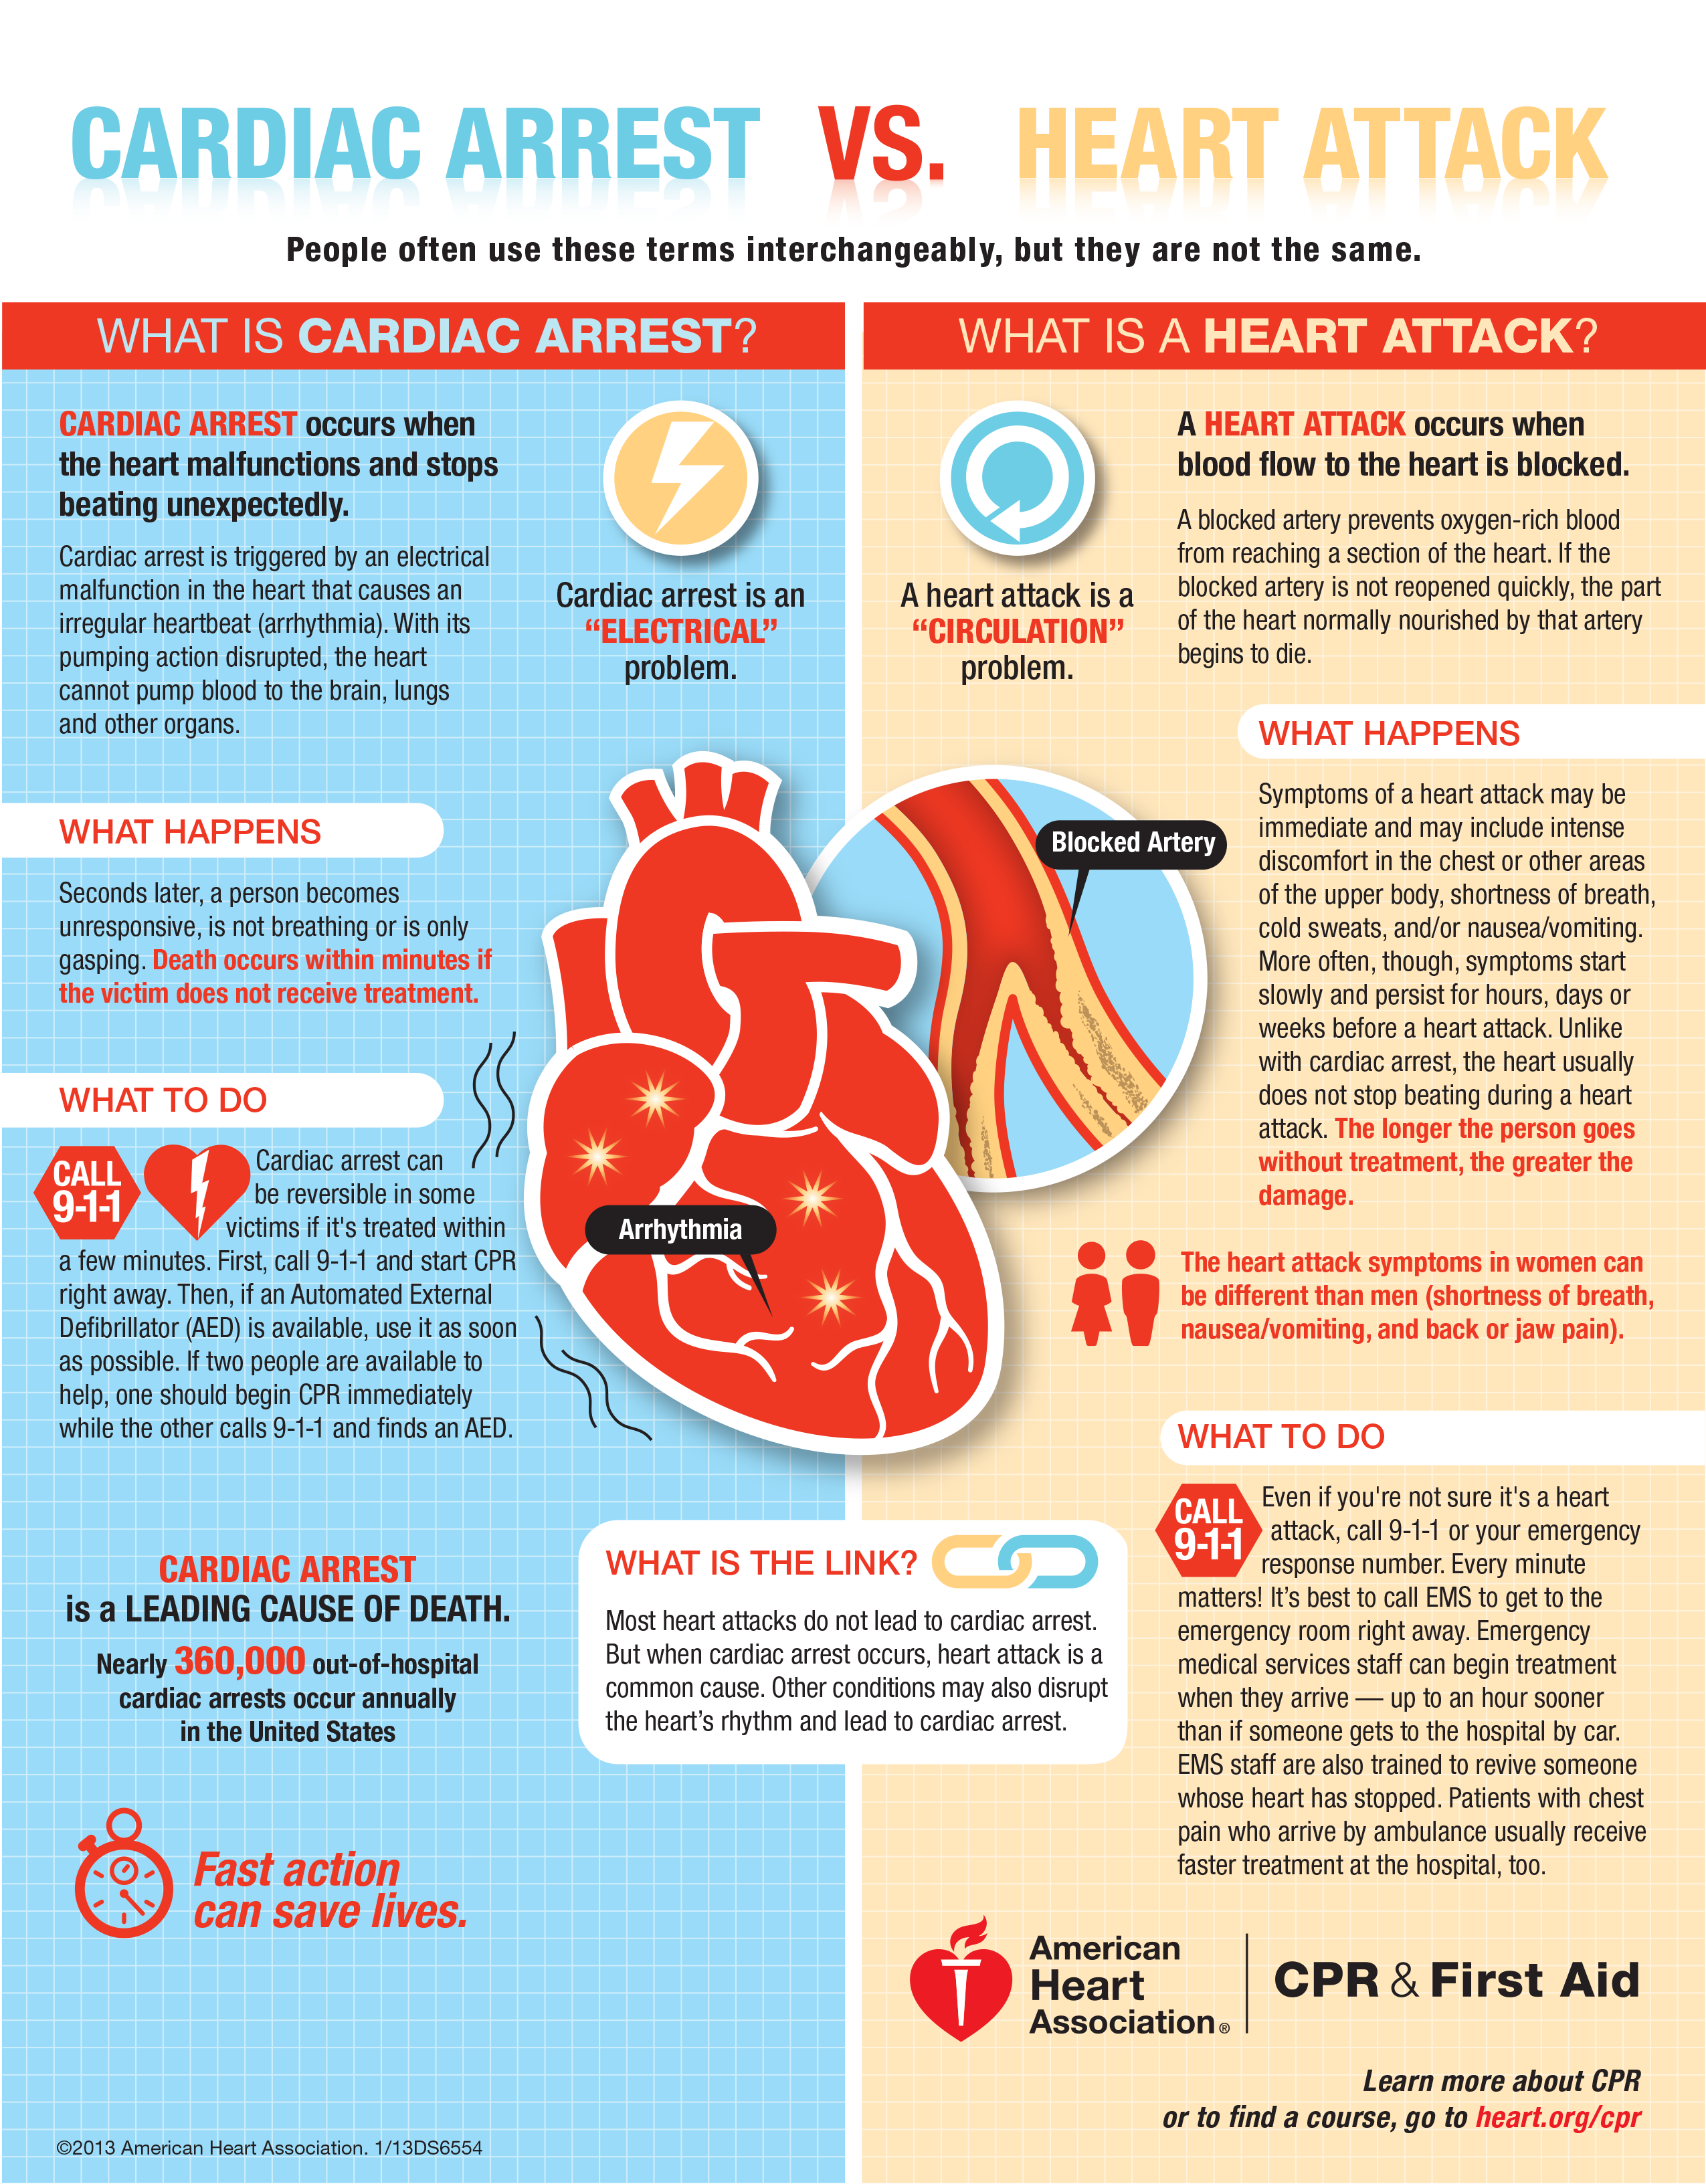 Cardiac Arrest vs. Heart Attack - One is an electrical problem and one is a  circulation problem.